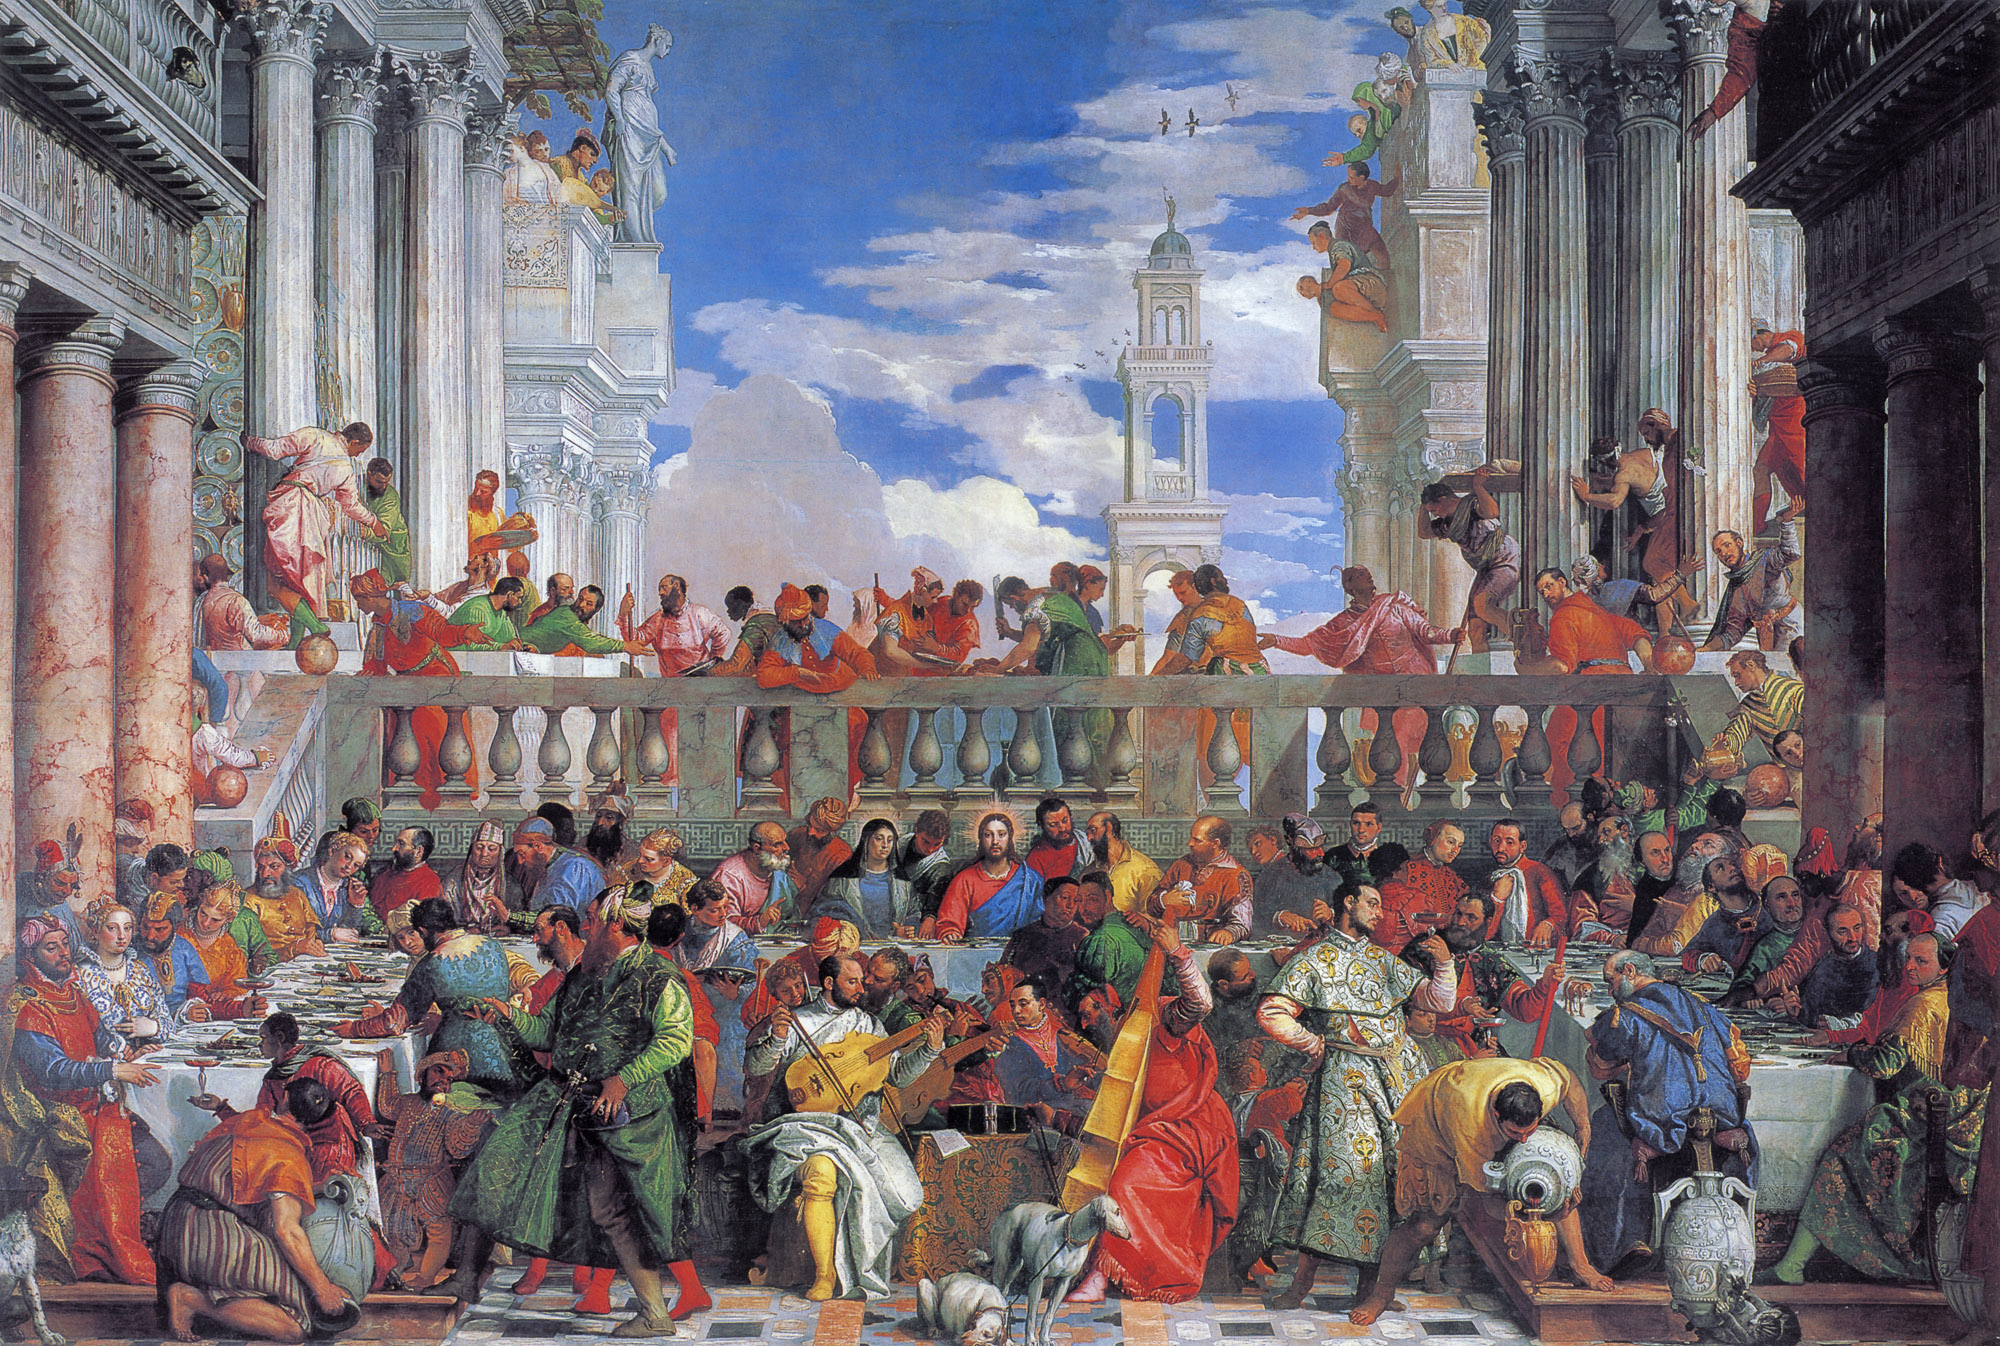 File:Paolo Veronese, The Wedding at Cana.JPG - Wikipedia